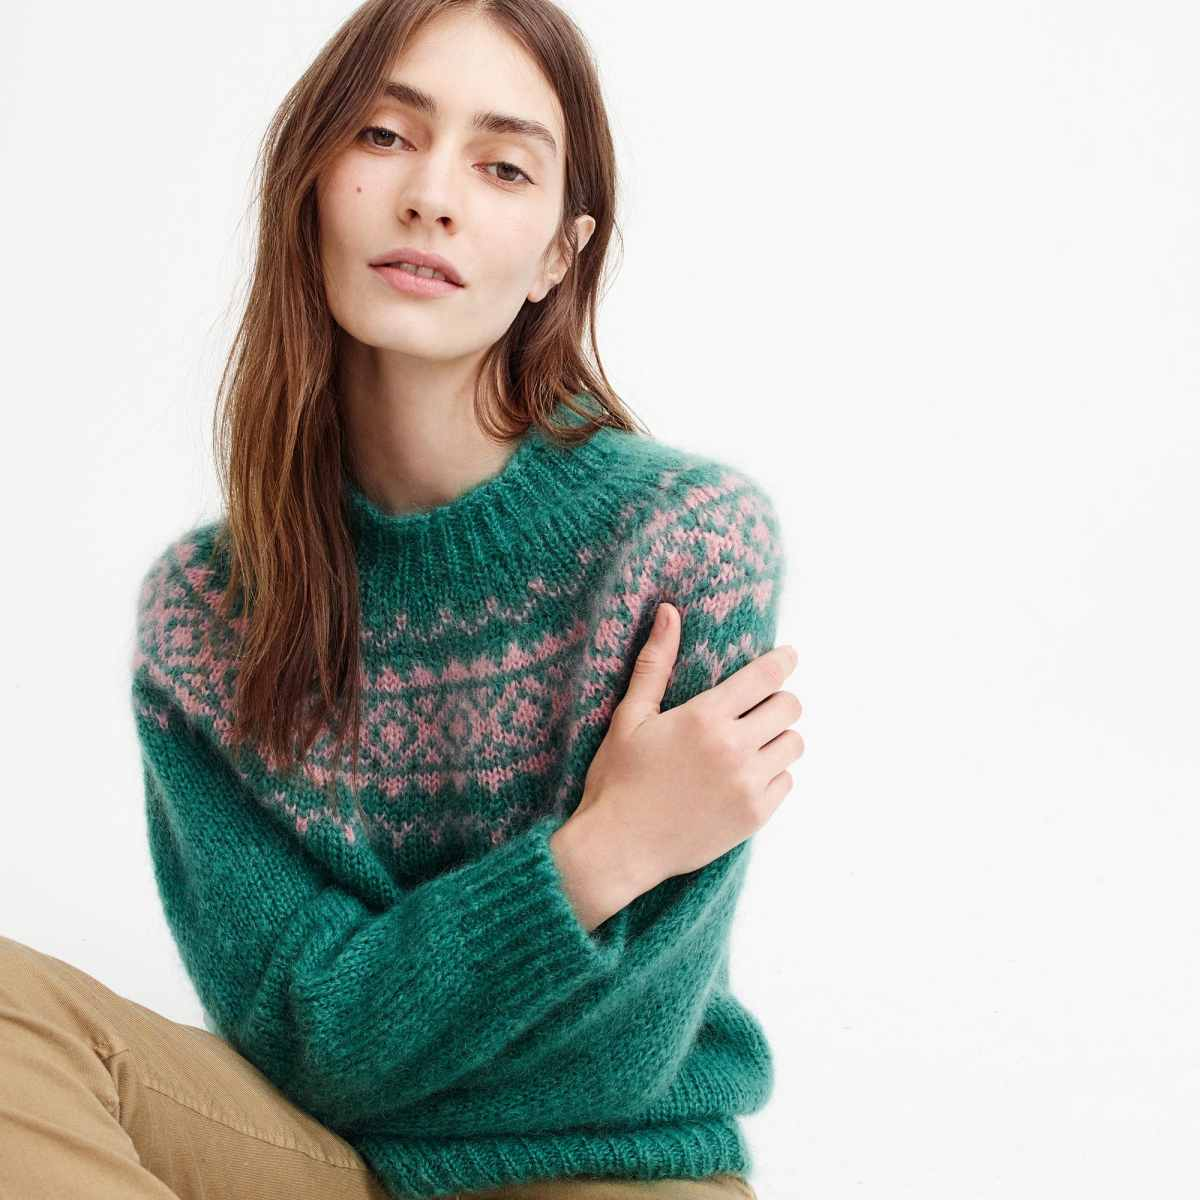 J.CREW HOLIDAY ARRIVALS + 40% OFF BLACK FRIDAY SALE